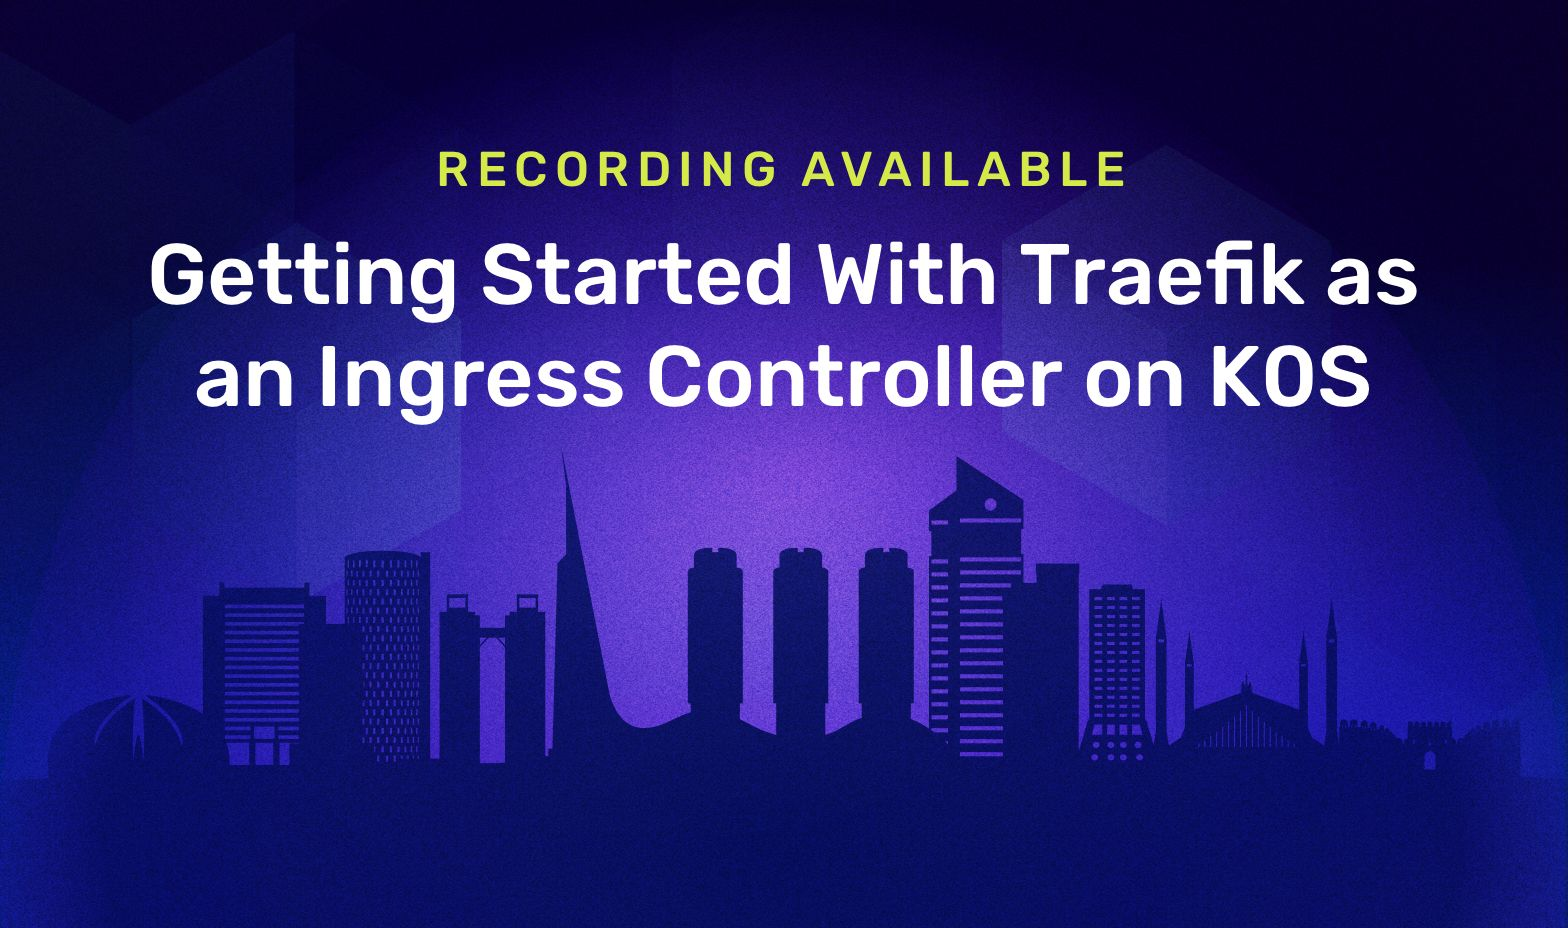 Getting Started With Traefik as an Ingress Controller On K0S project